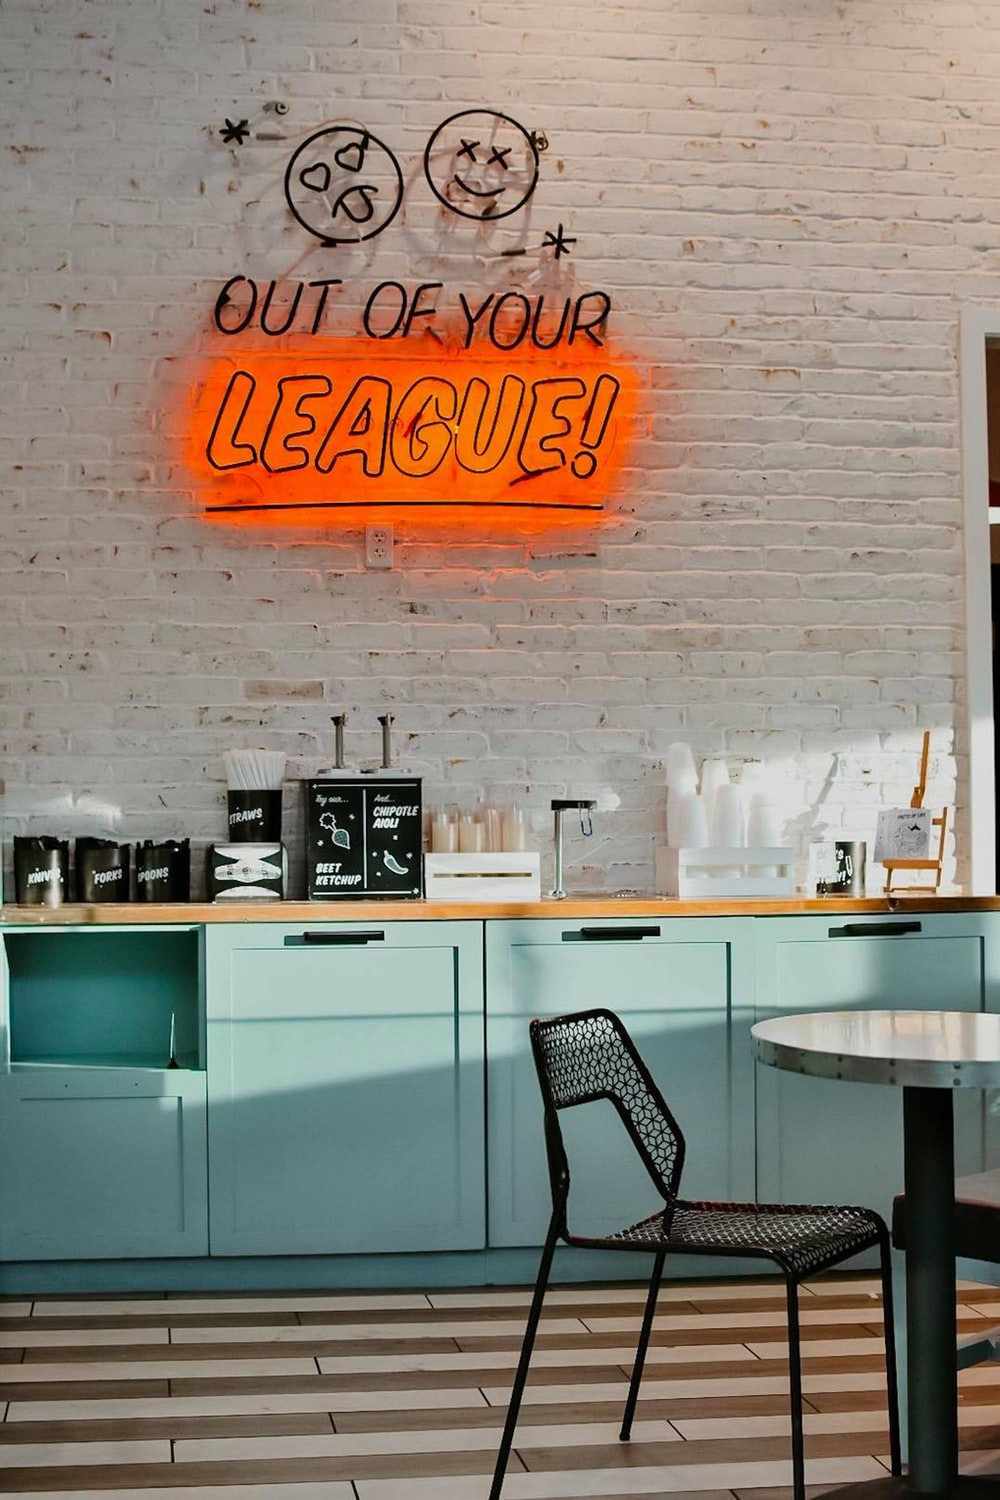 Out of Your League neon light signage